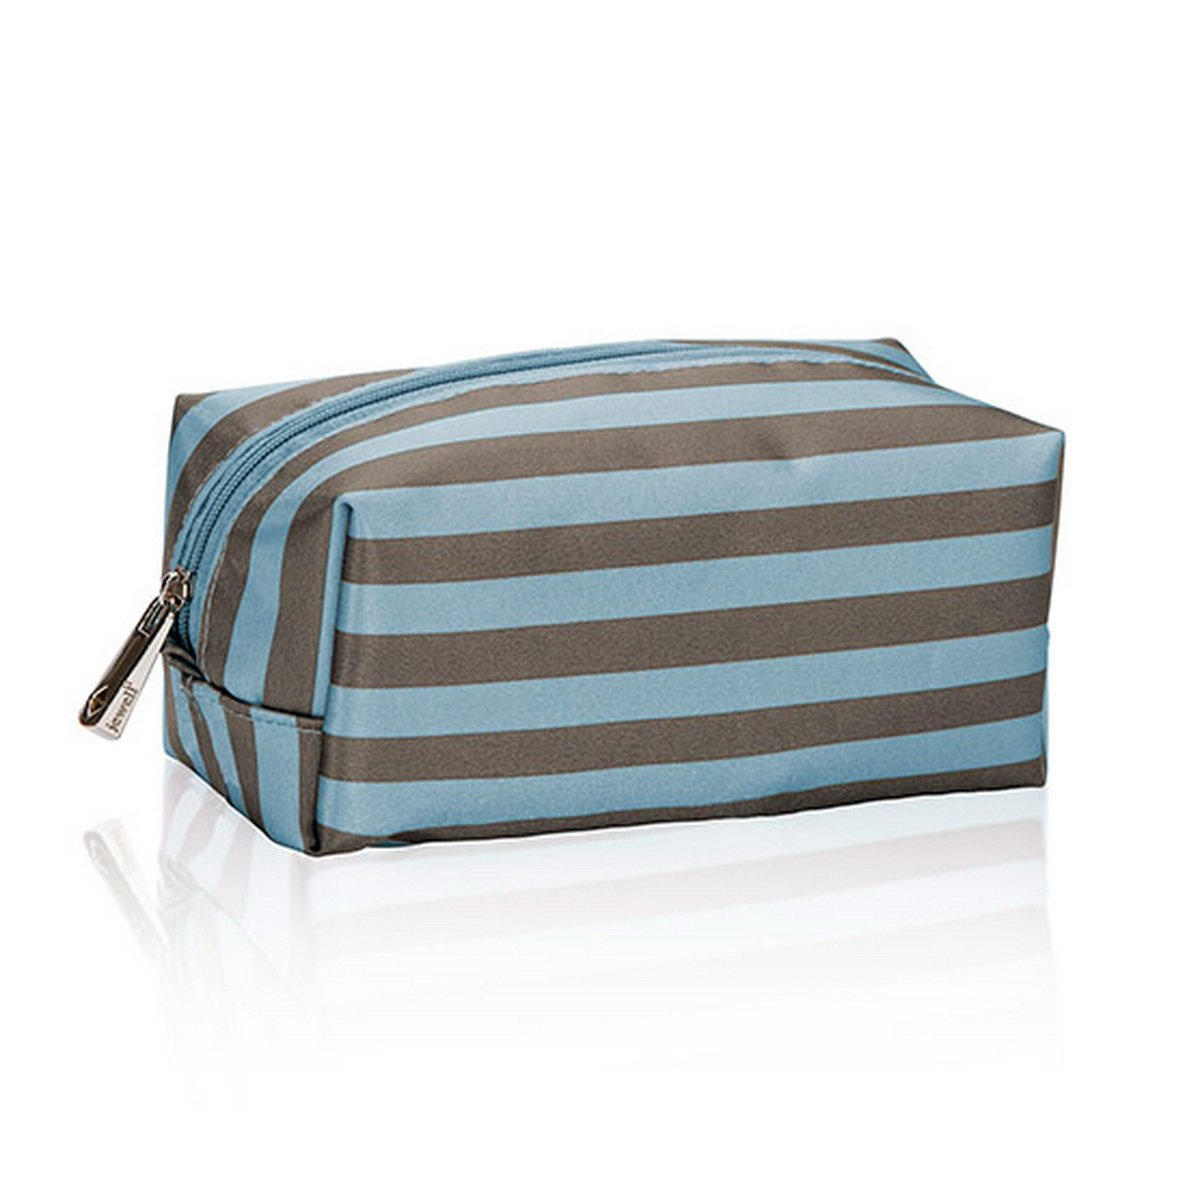 Thirty One Uptown Mini Pouch in Perfect Stripe - No Monogram - 4954